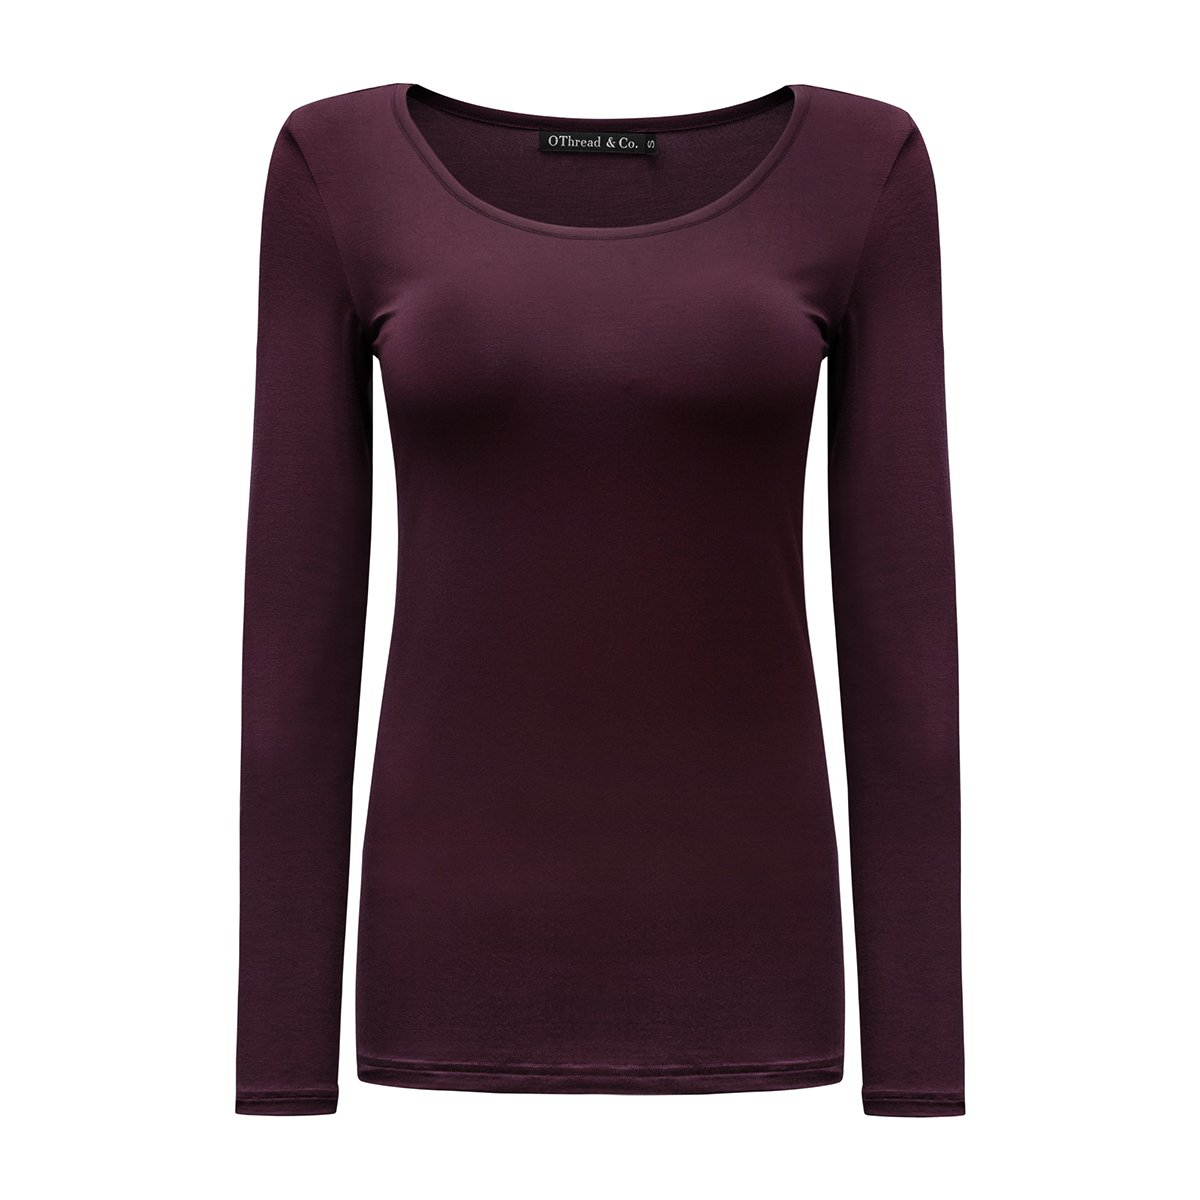 OThread & Co. Women's Long Sleeves T-Shirt Scoop Neck Plain Basic Spandex Tee